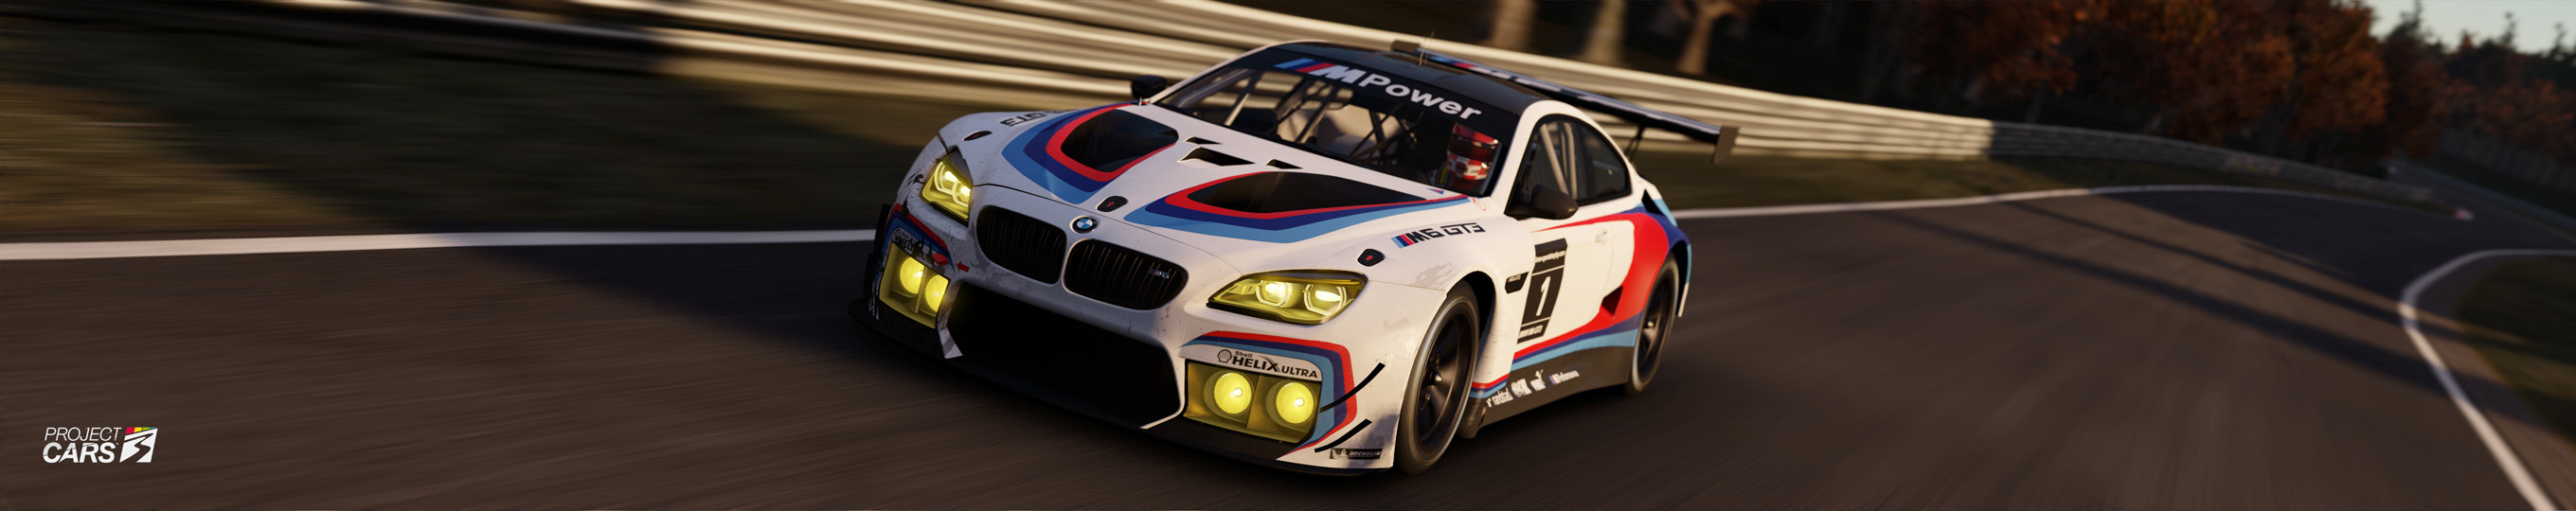 1 PROJECT CARS 3 BMW GT3 on NORDS crop copy.jpg